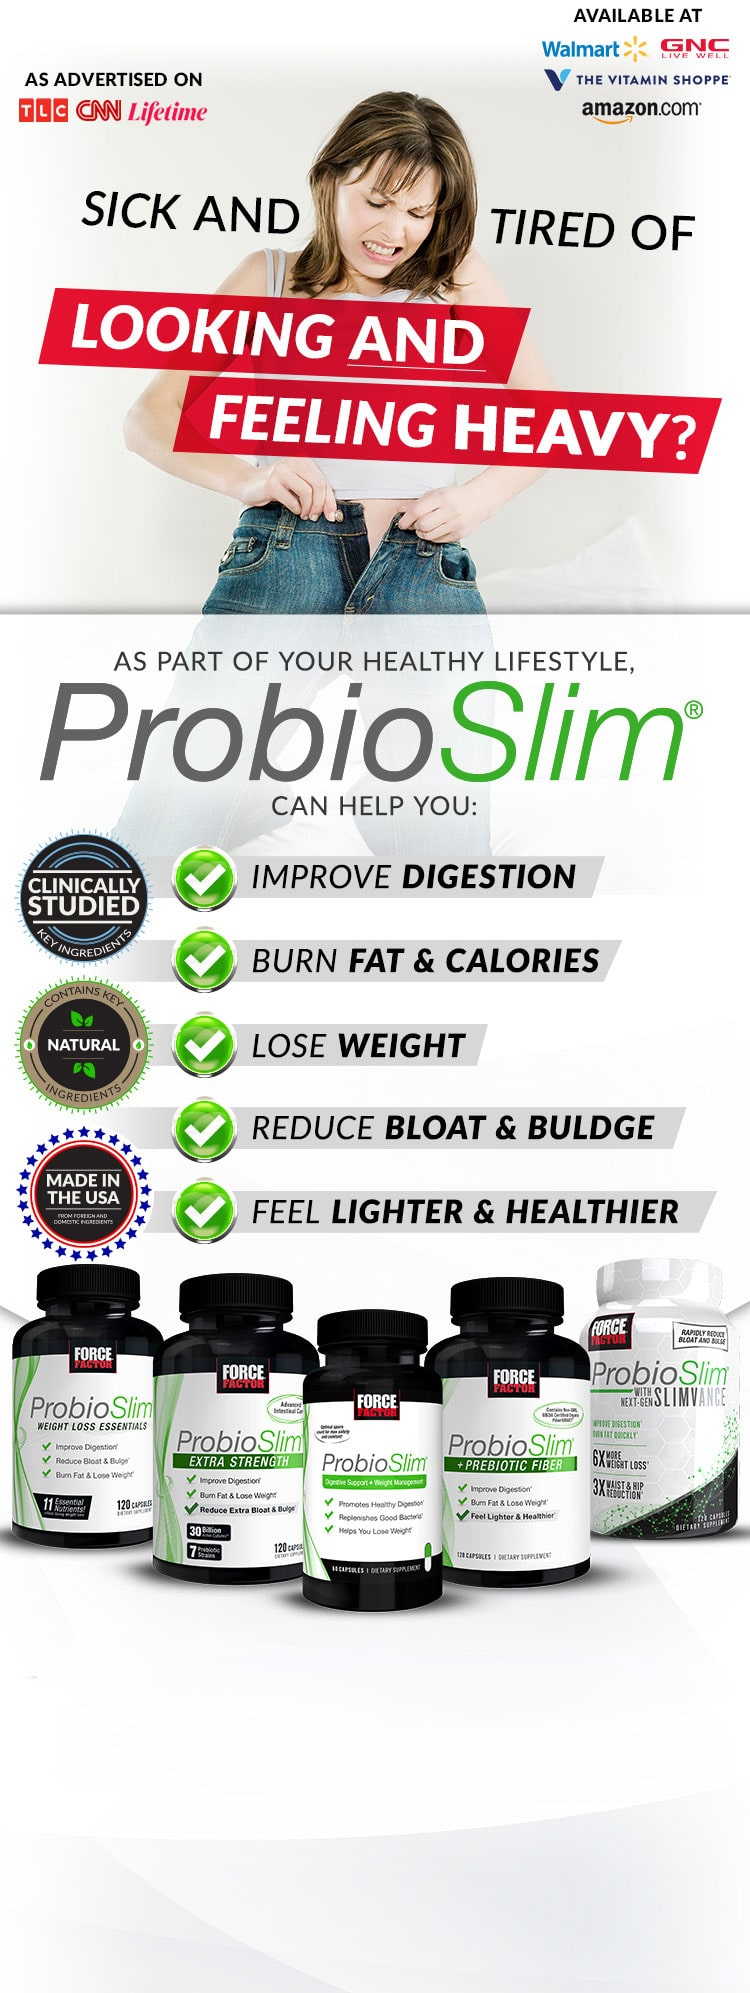 SICK AND TIRED OF LOOKING AND FEELING HEAVY? As part of your healthy lifestyle, ProbioSlim® can help you: Improve Digestion, Burn Fat & Calories, Lose Weight, Reduce Bloat & Bulge, Feel Lighter & Healthier